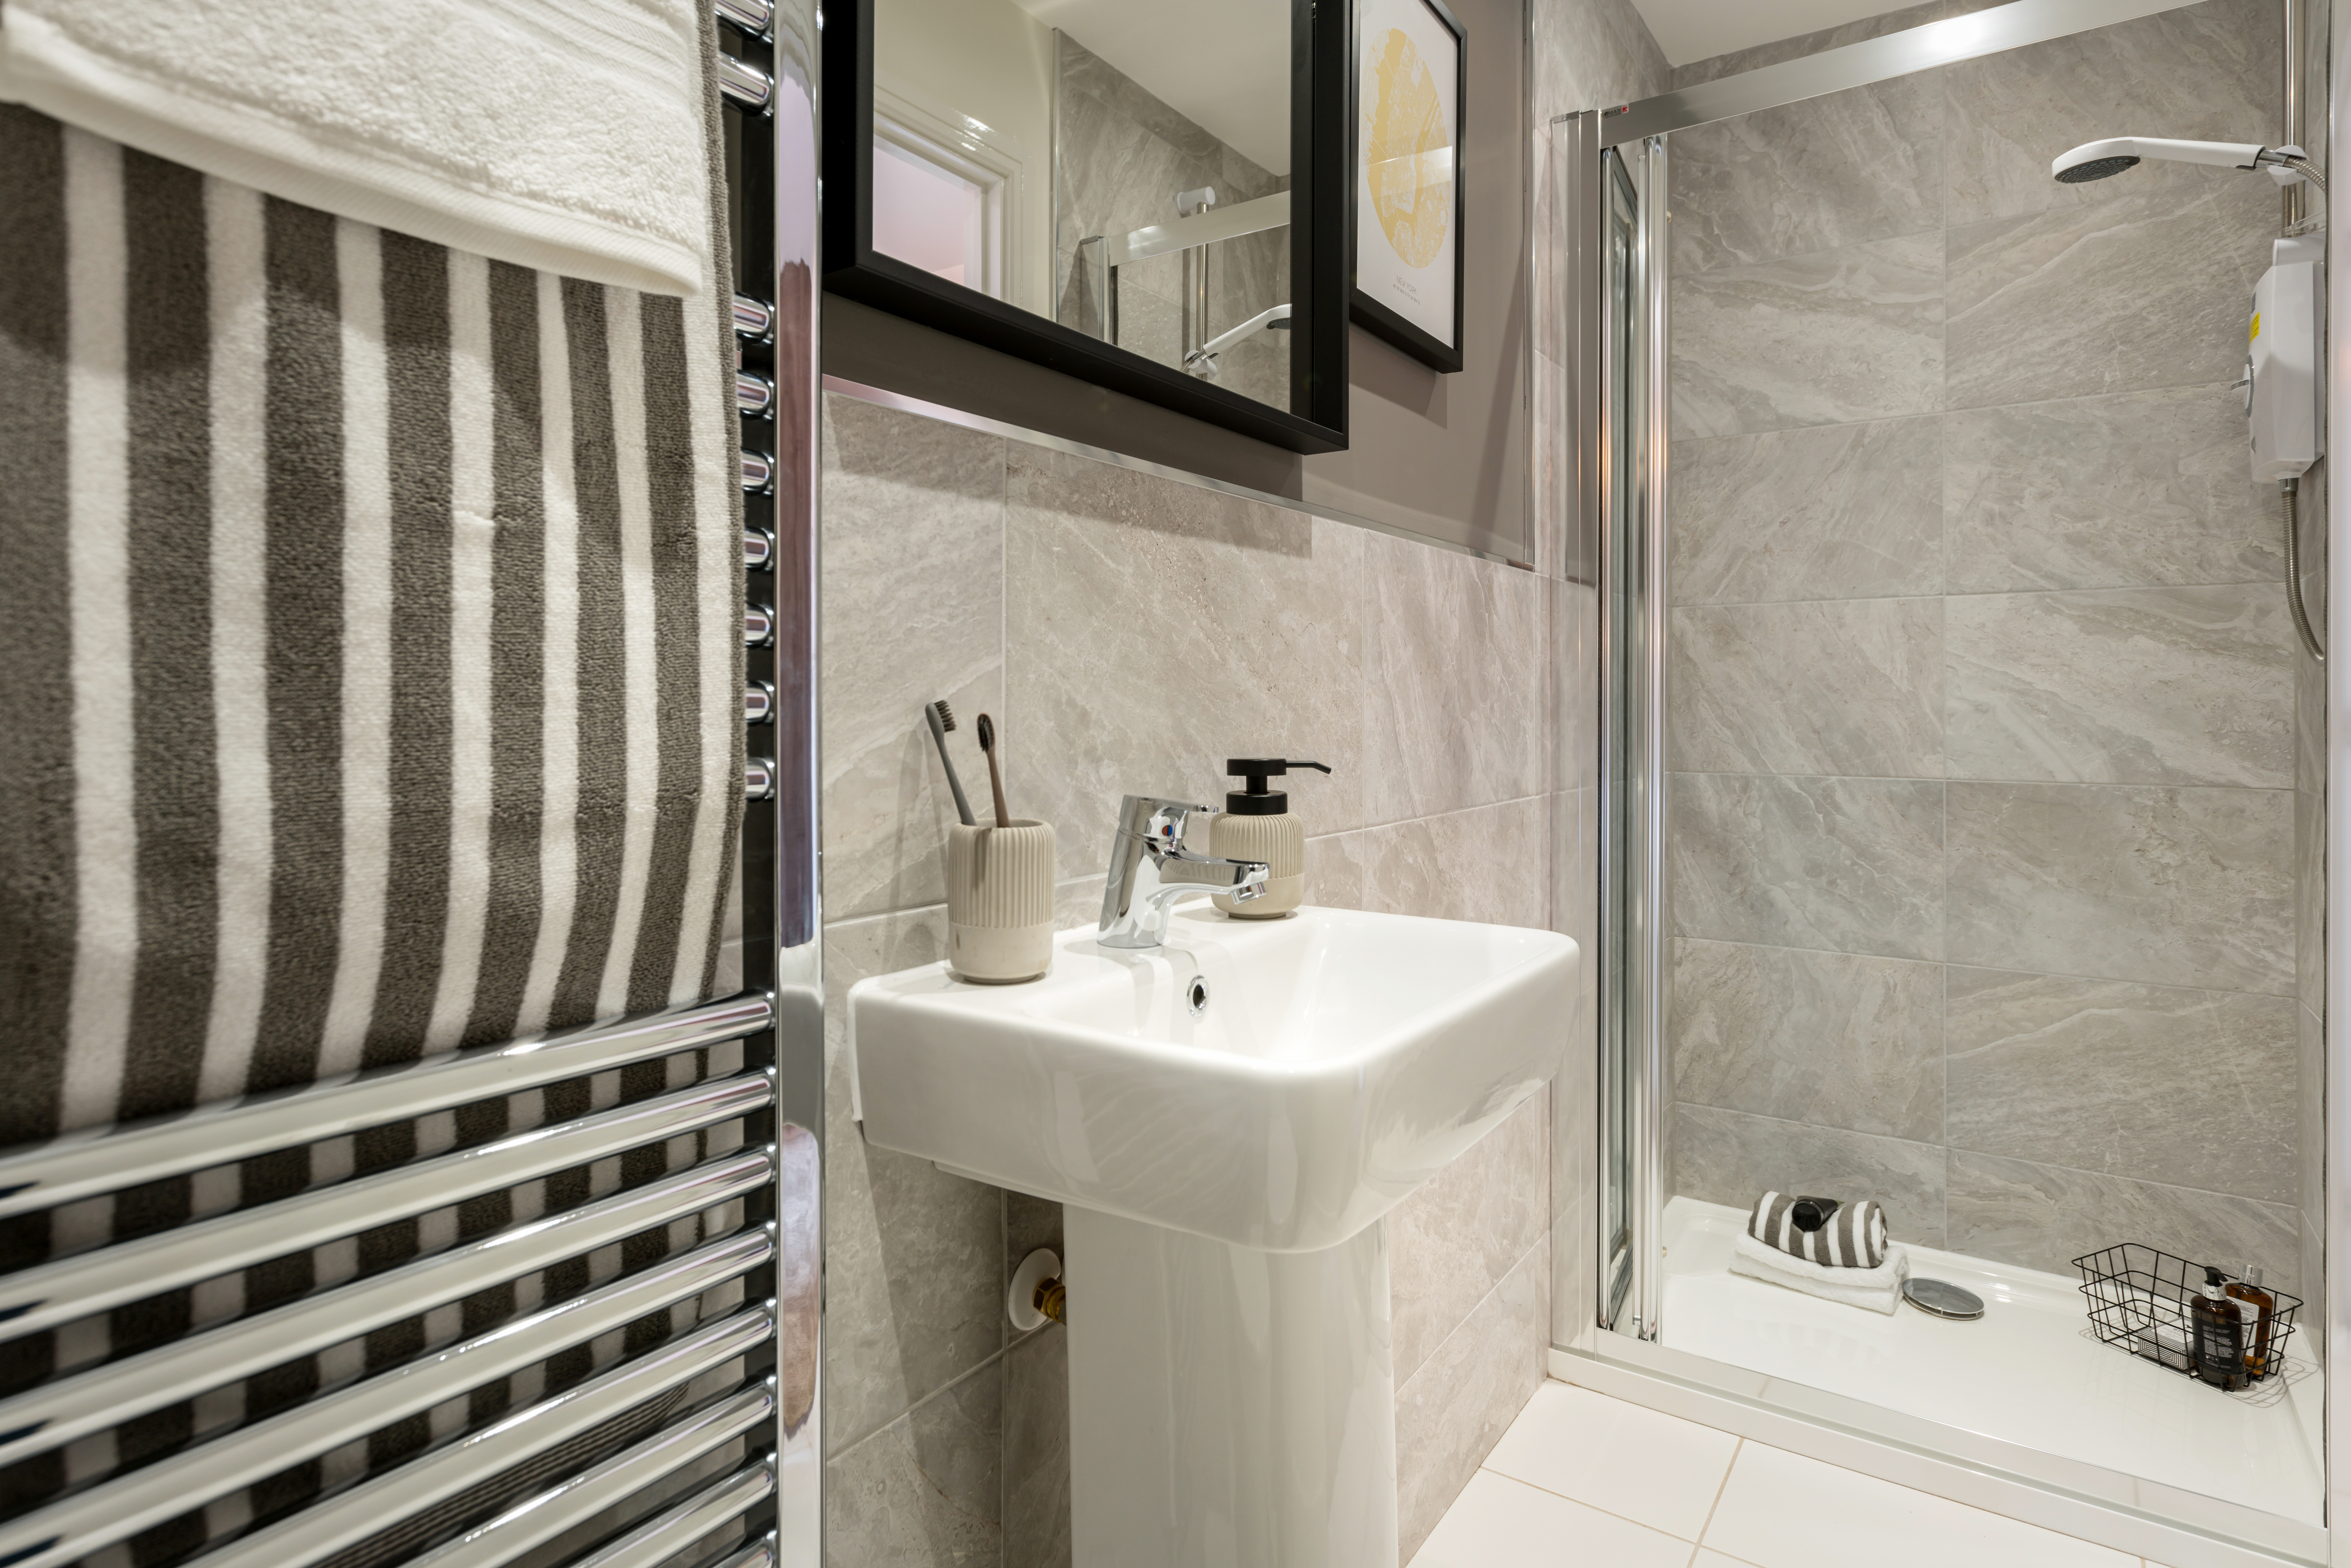 TW NM_The Coopers_PA25_The Canford_En-suite